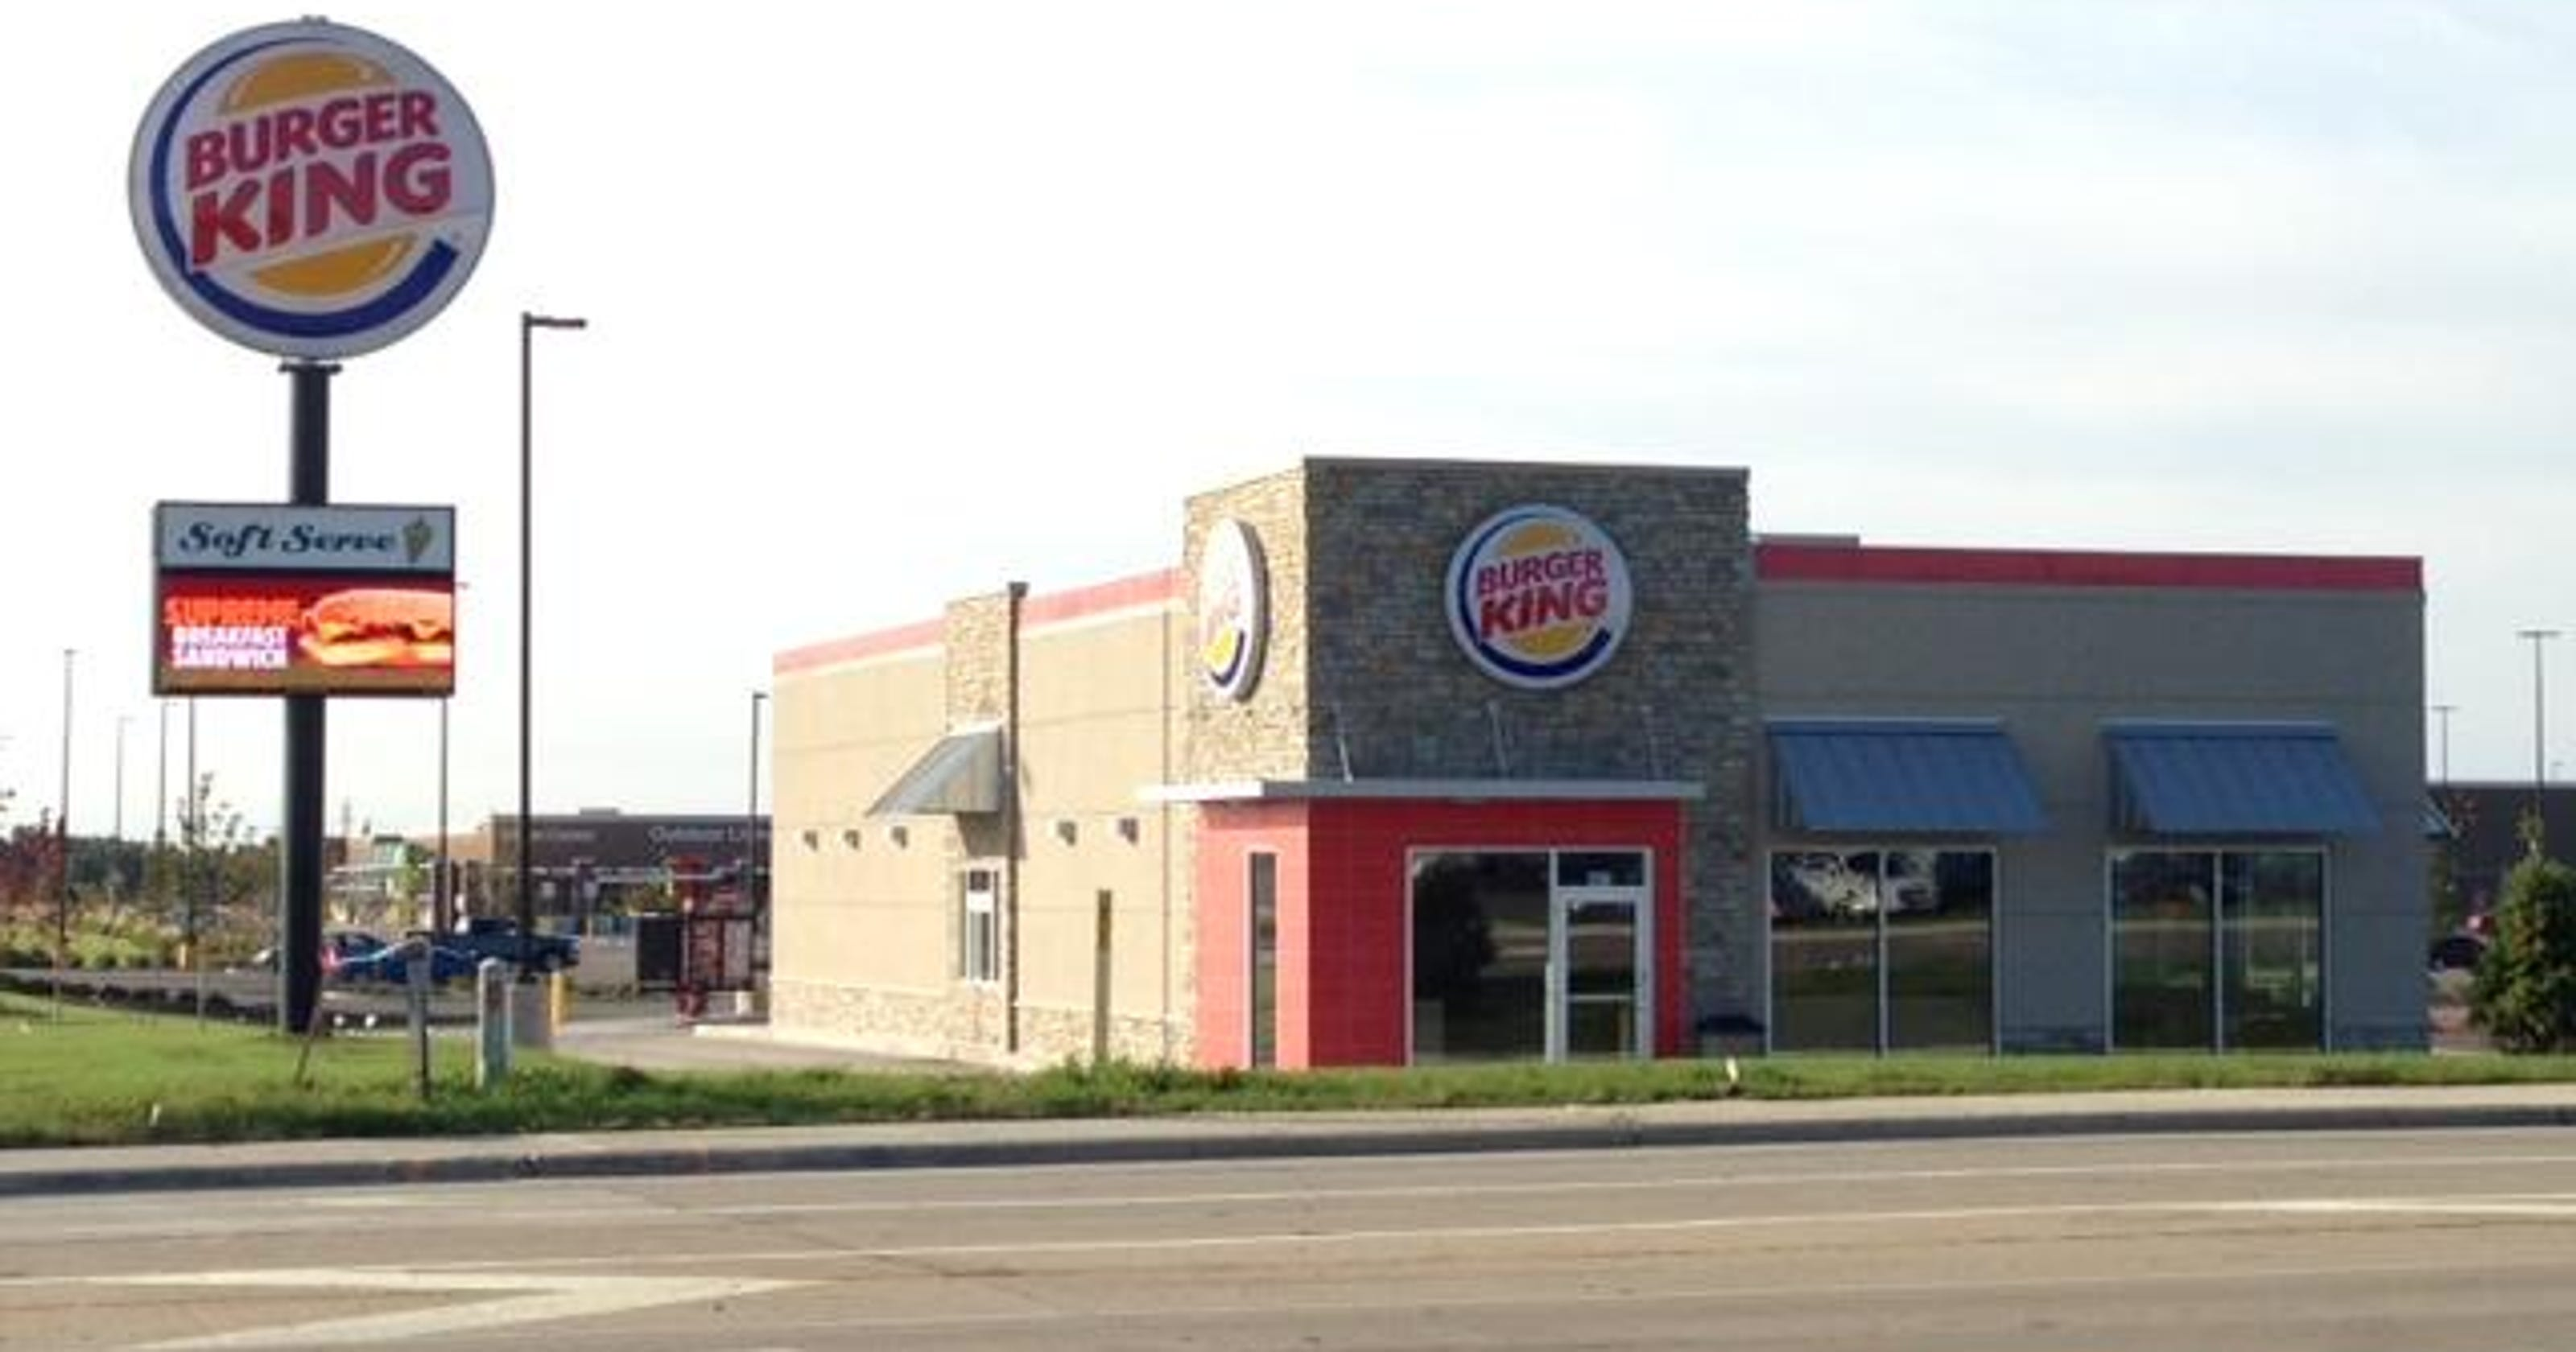 Comings & Goings: Burger King opens